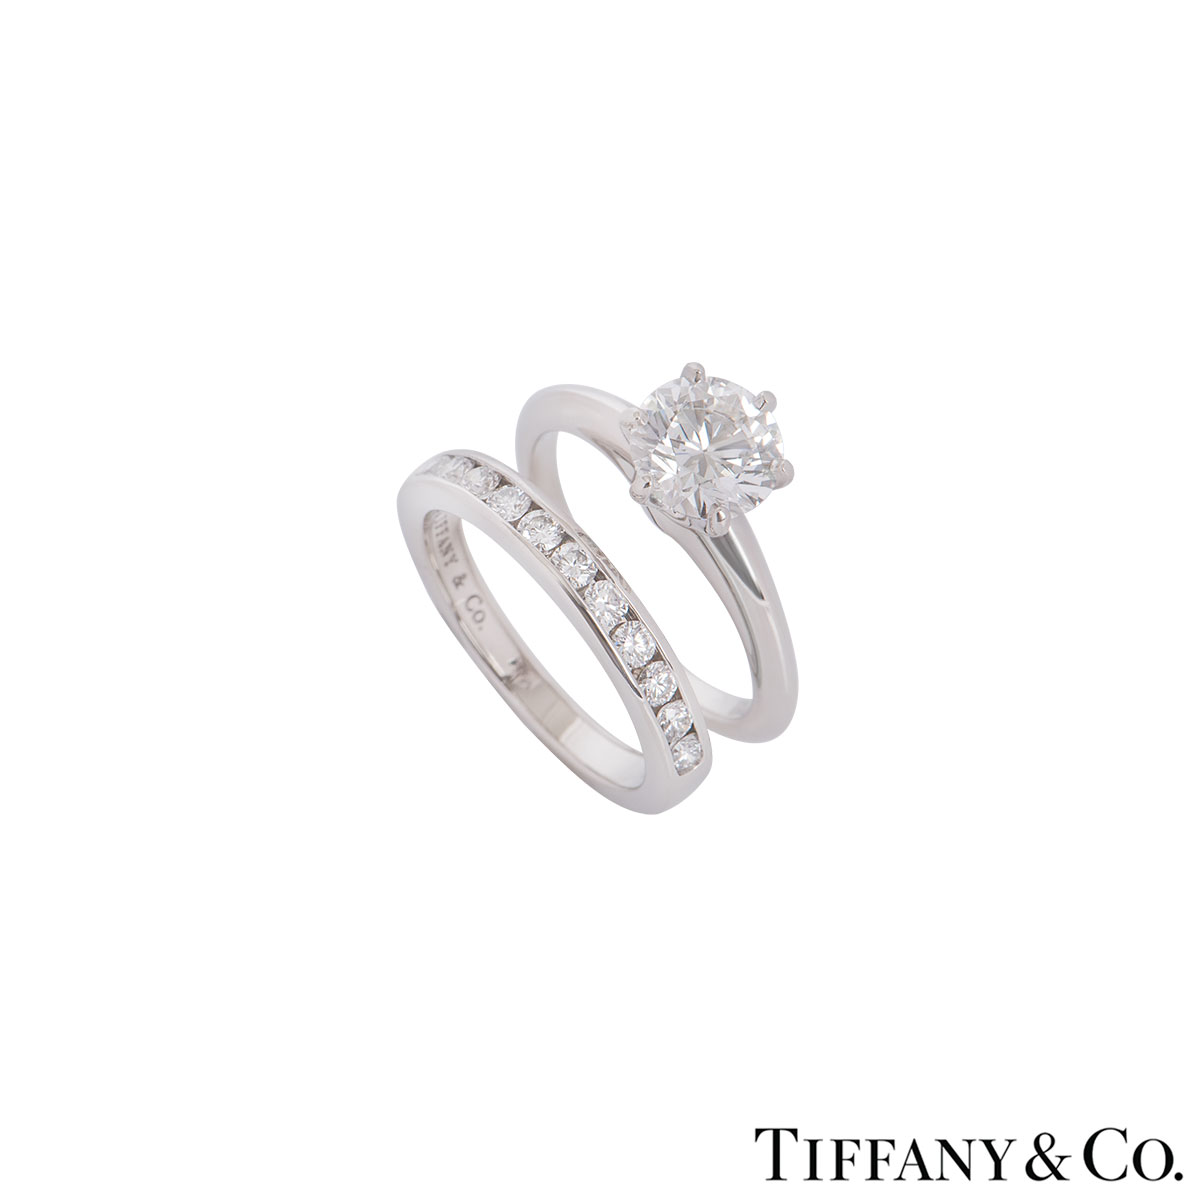 Tiffany & Co. Platinum Diamond Ring 1.36ct G/VVS1 With Diamond Half Eternity Ring